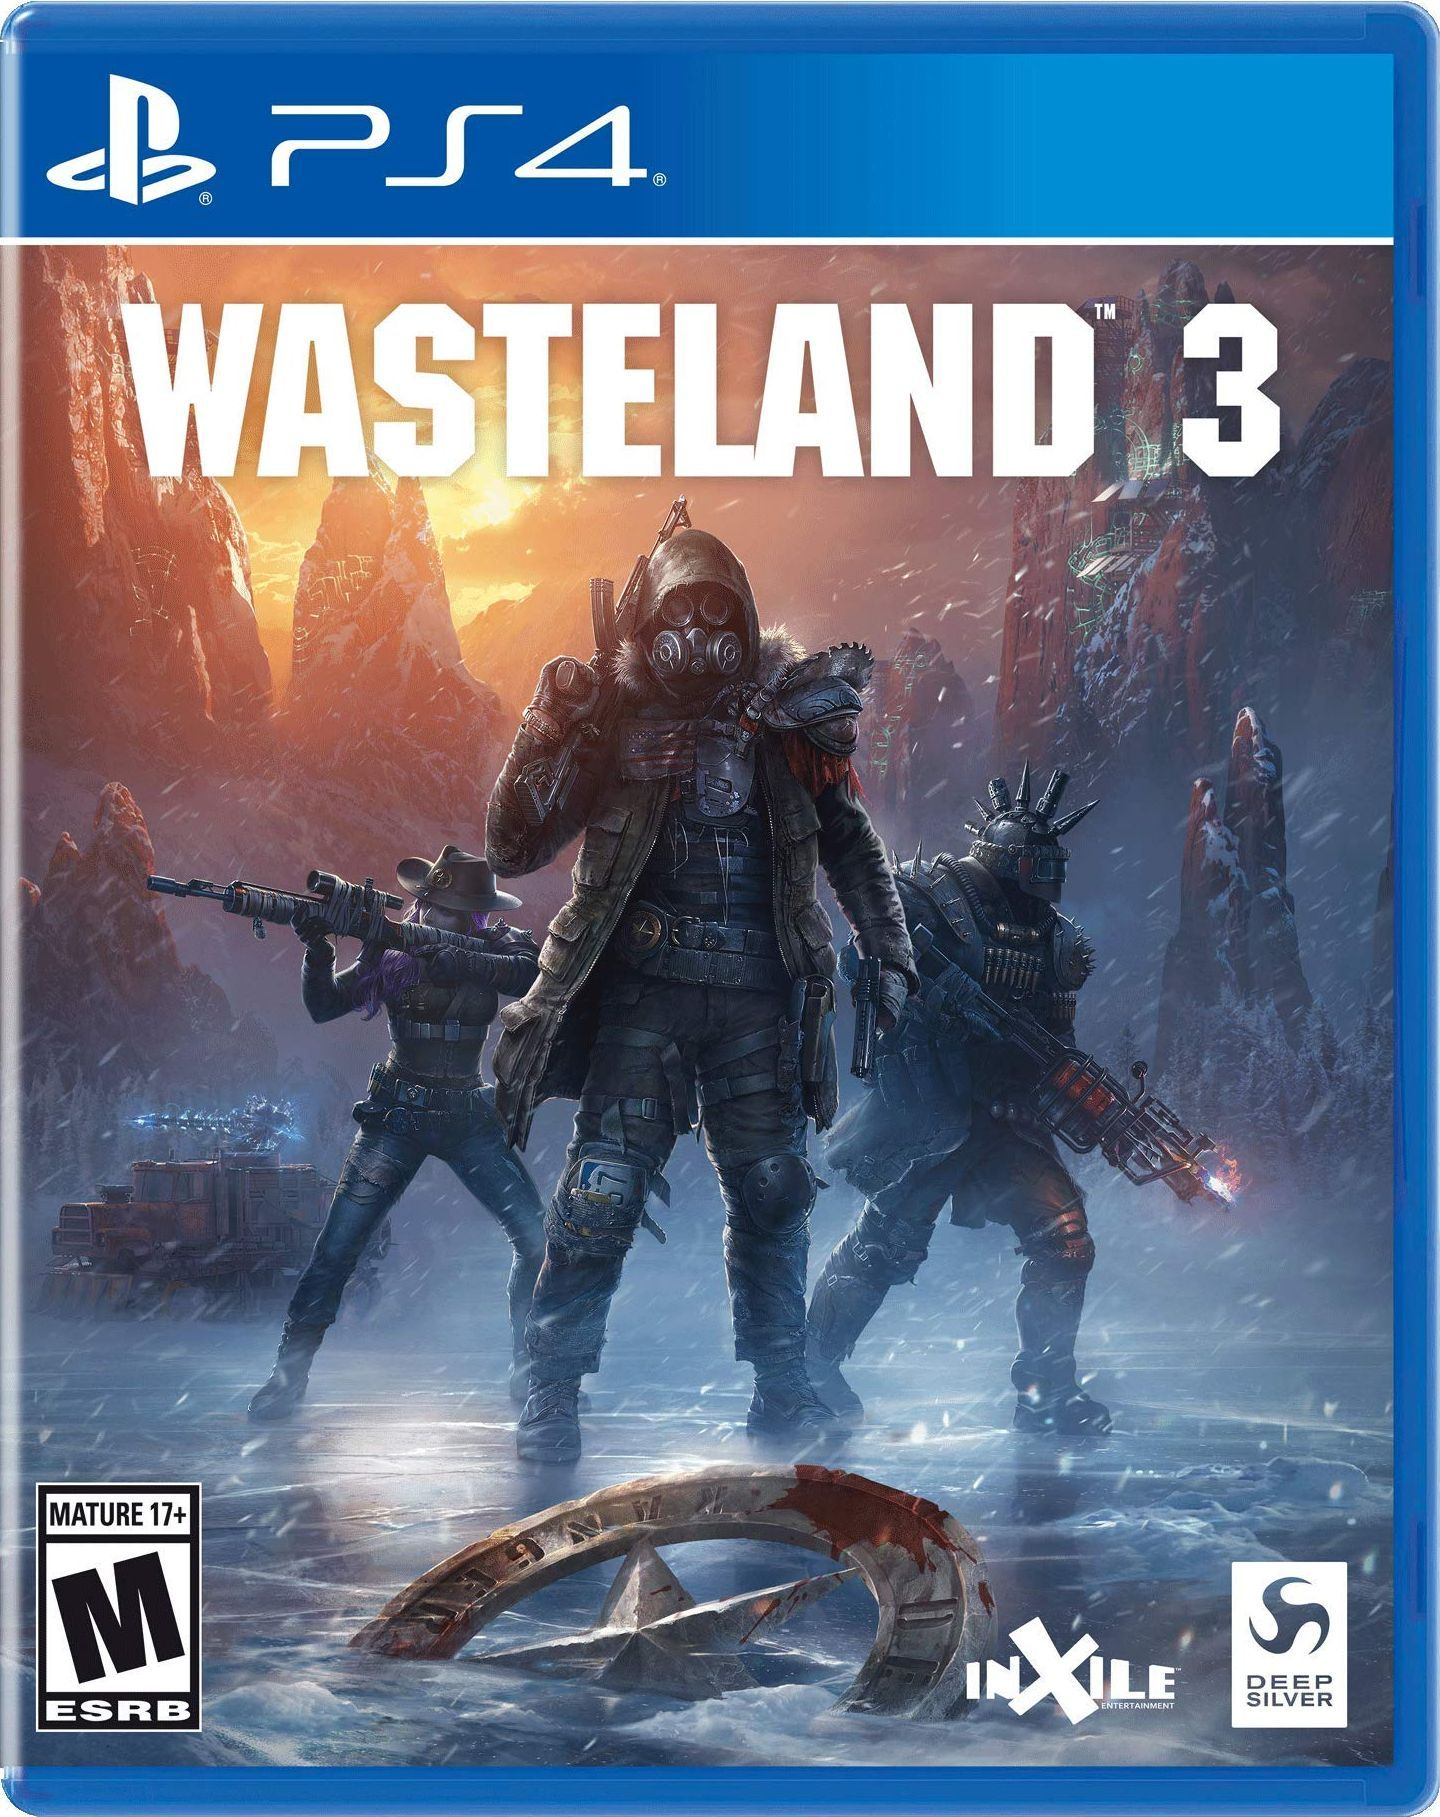 Wasteland 3 in 2020 Game release dates, Wasteland, How